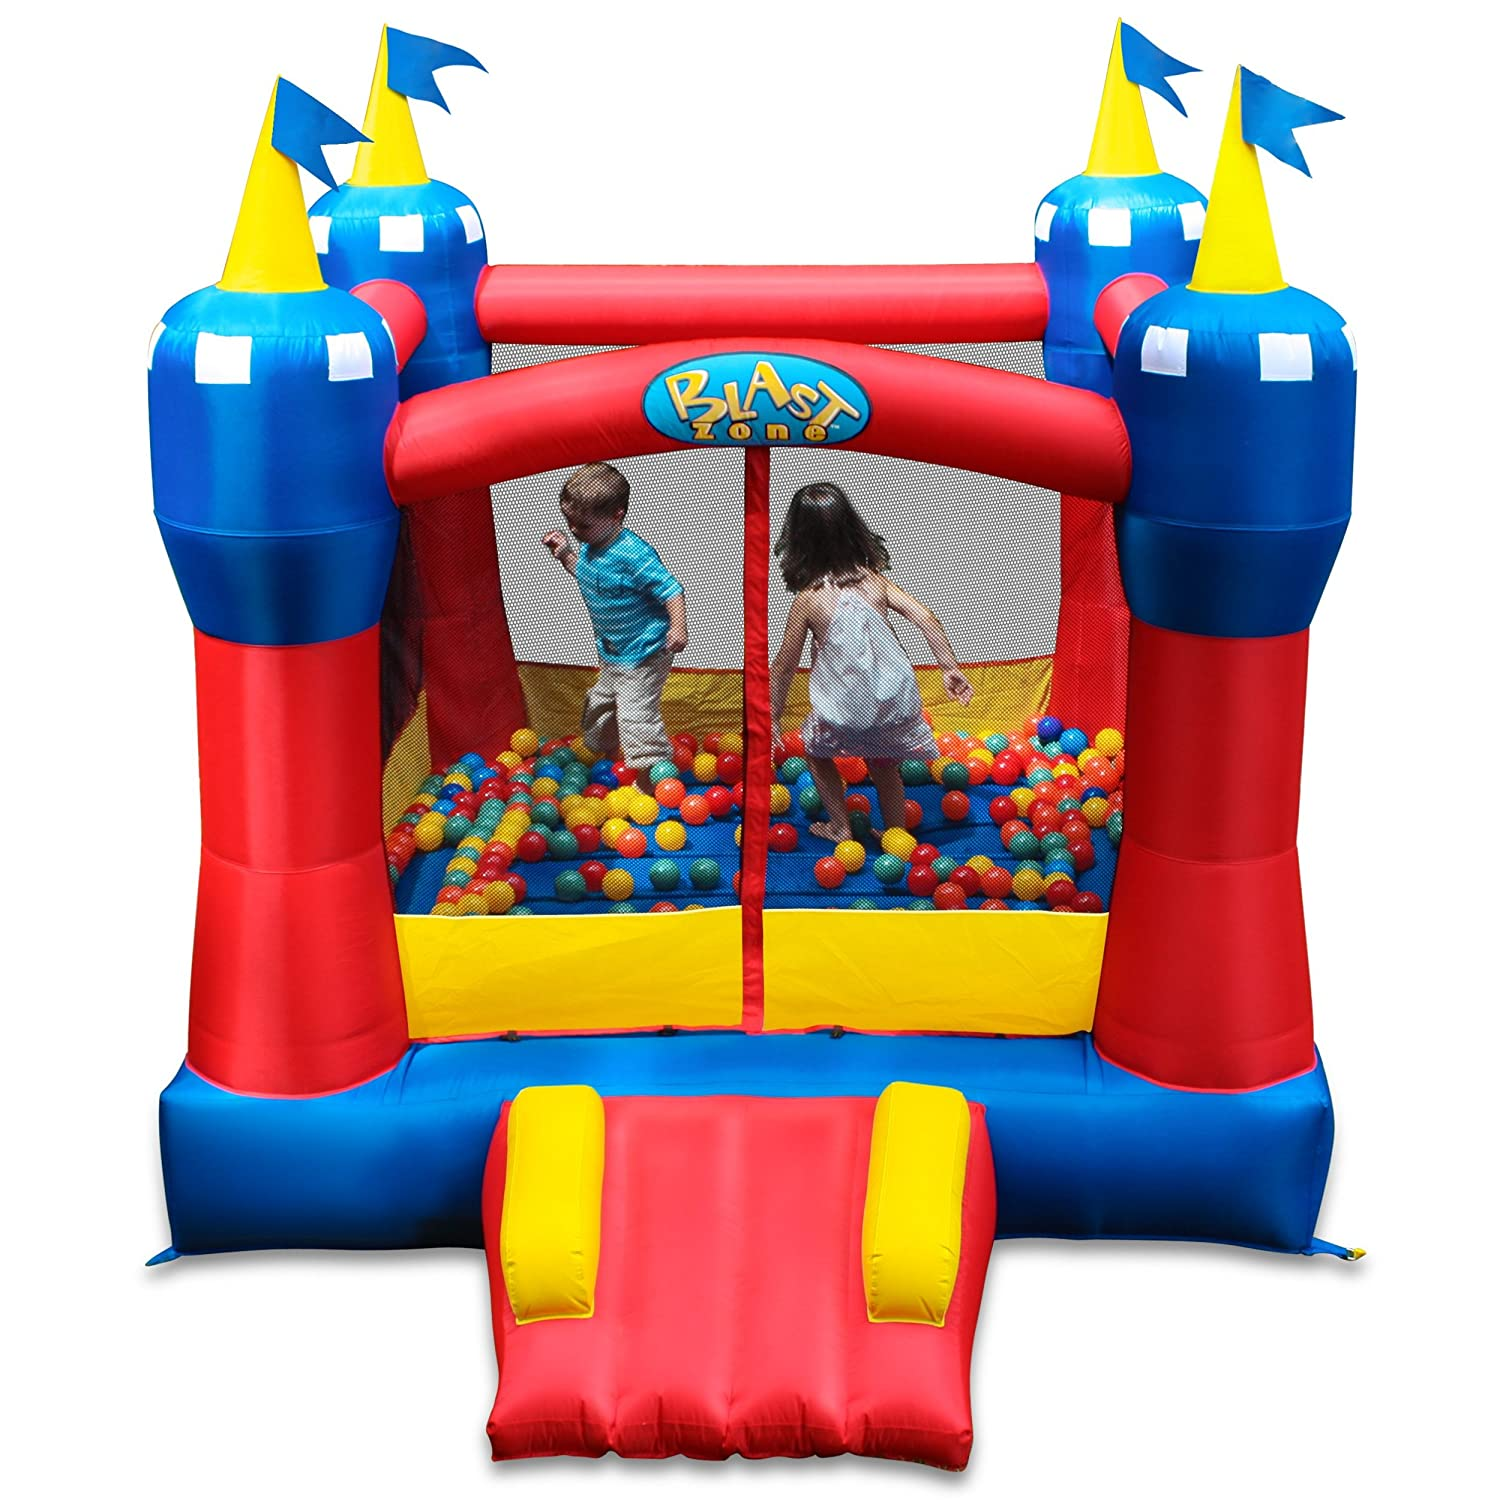 The Magic Castle Bounce House Giveaway